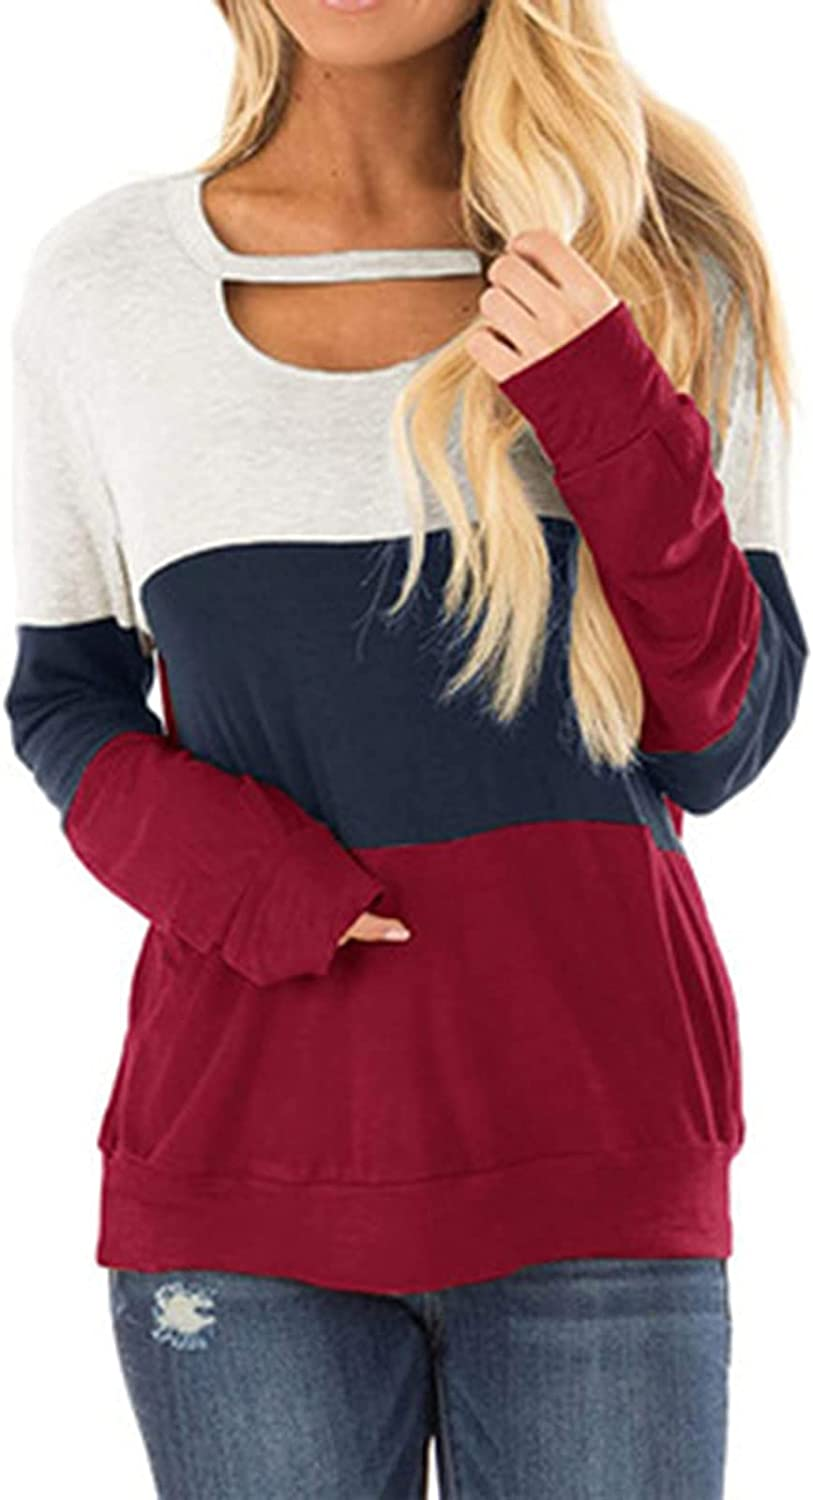 Casual Hollow Low O Neck Long Sleeve T-Shirt for Women Summer Patchwork Loose Blouse Tops Comfortable Tunic Tee